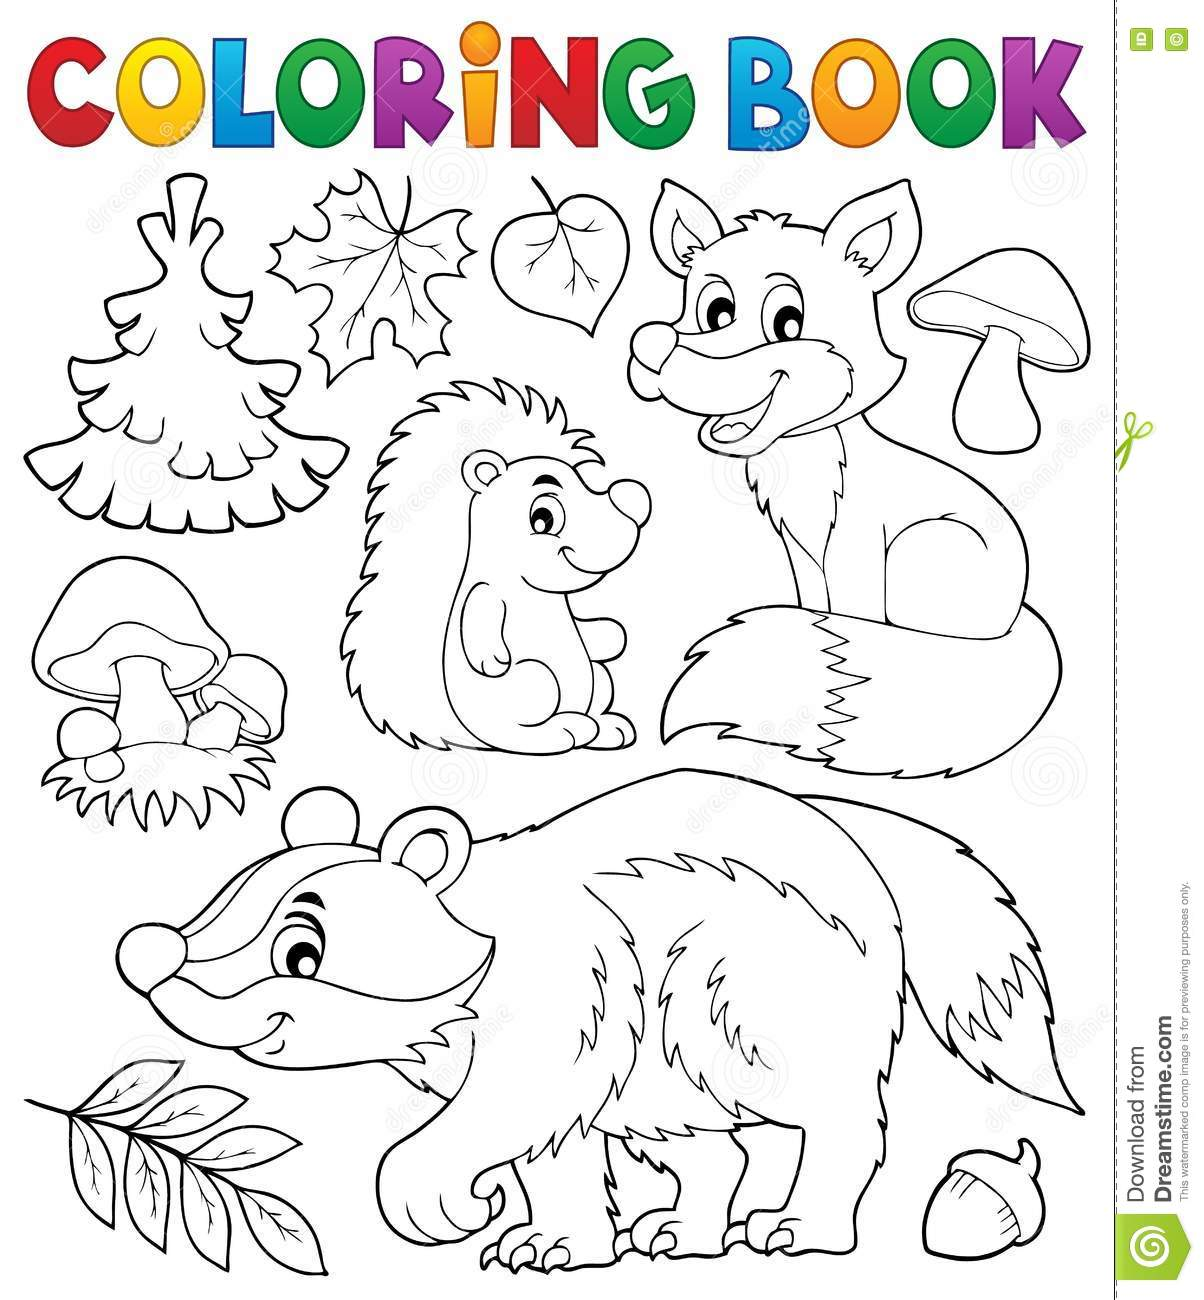 Coloring Book Forest Wildlife Theme 1 Vector Illustration